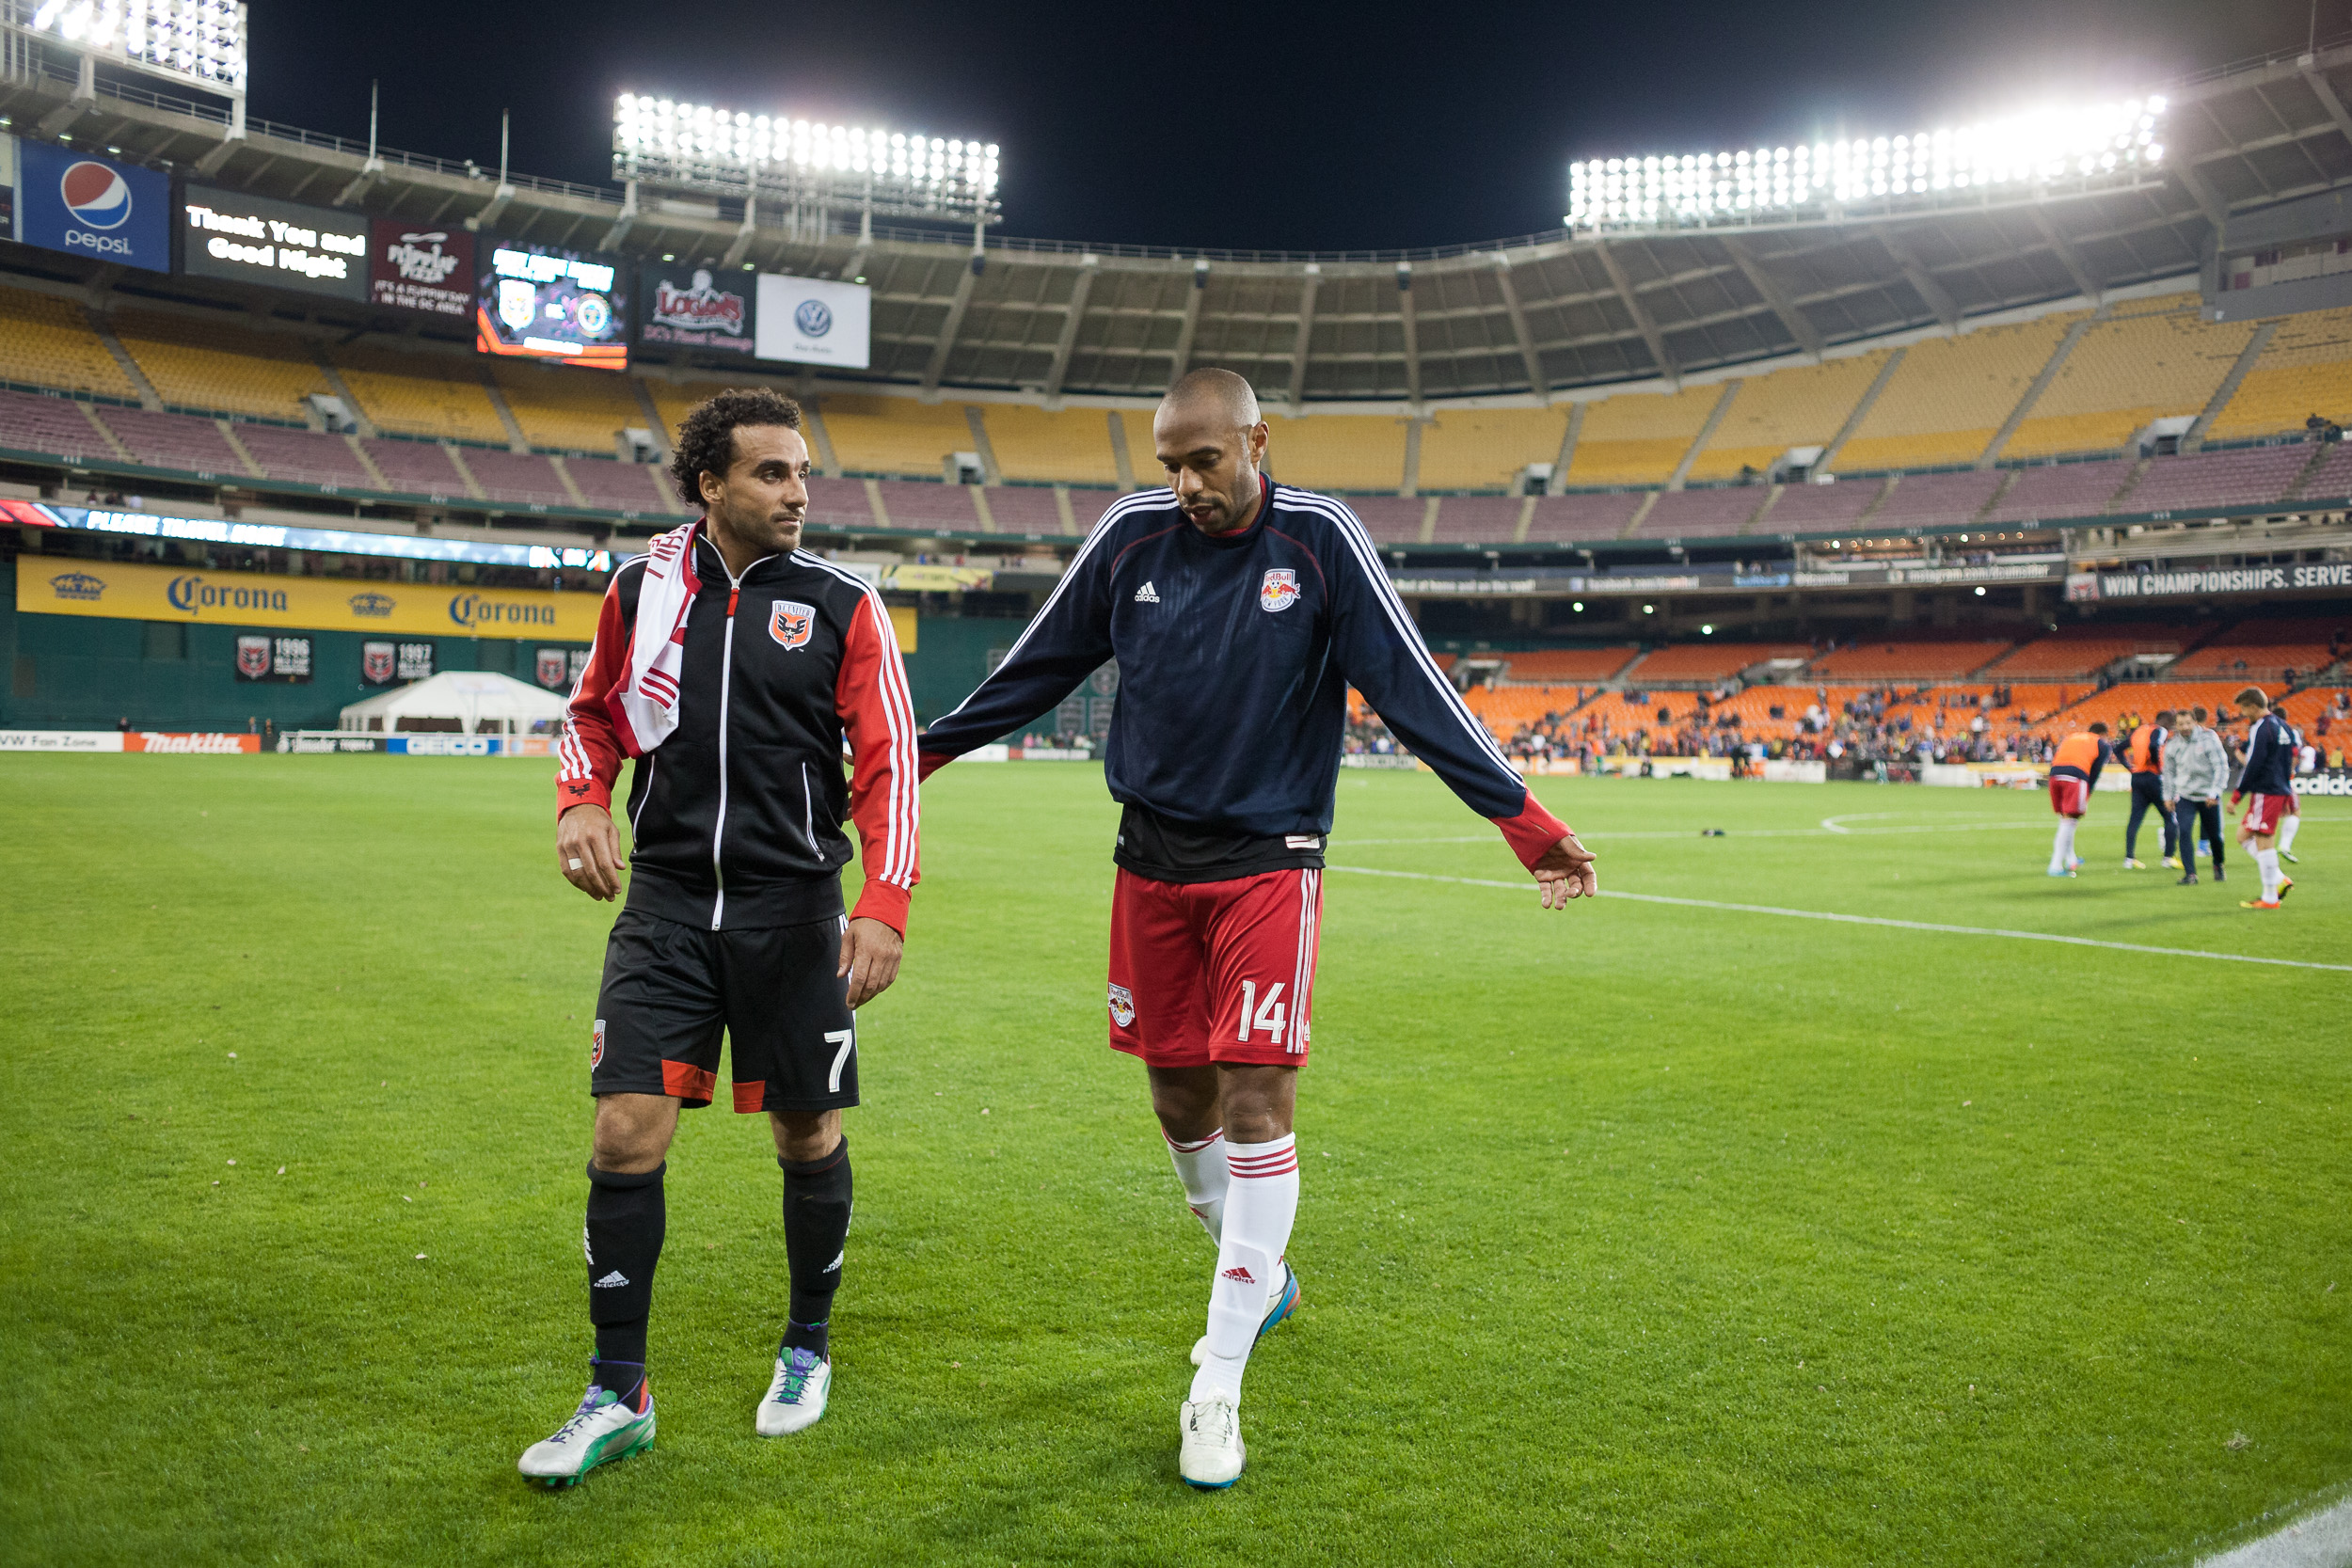 Dwayne De Rosario (7) and Thierry Henry